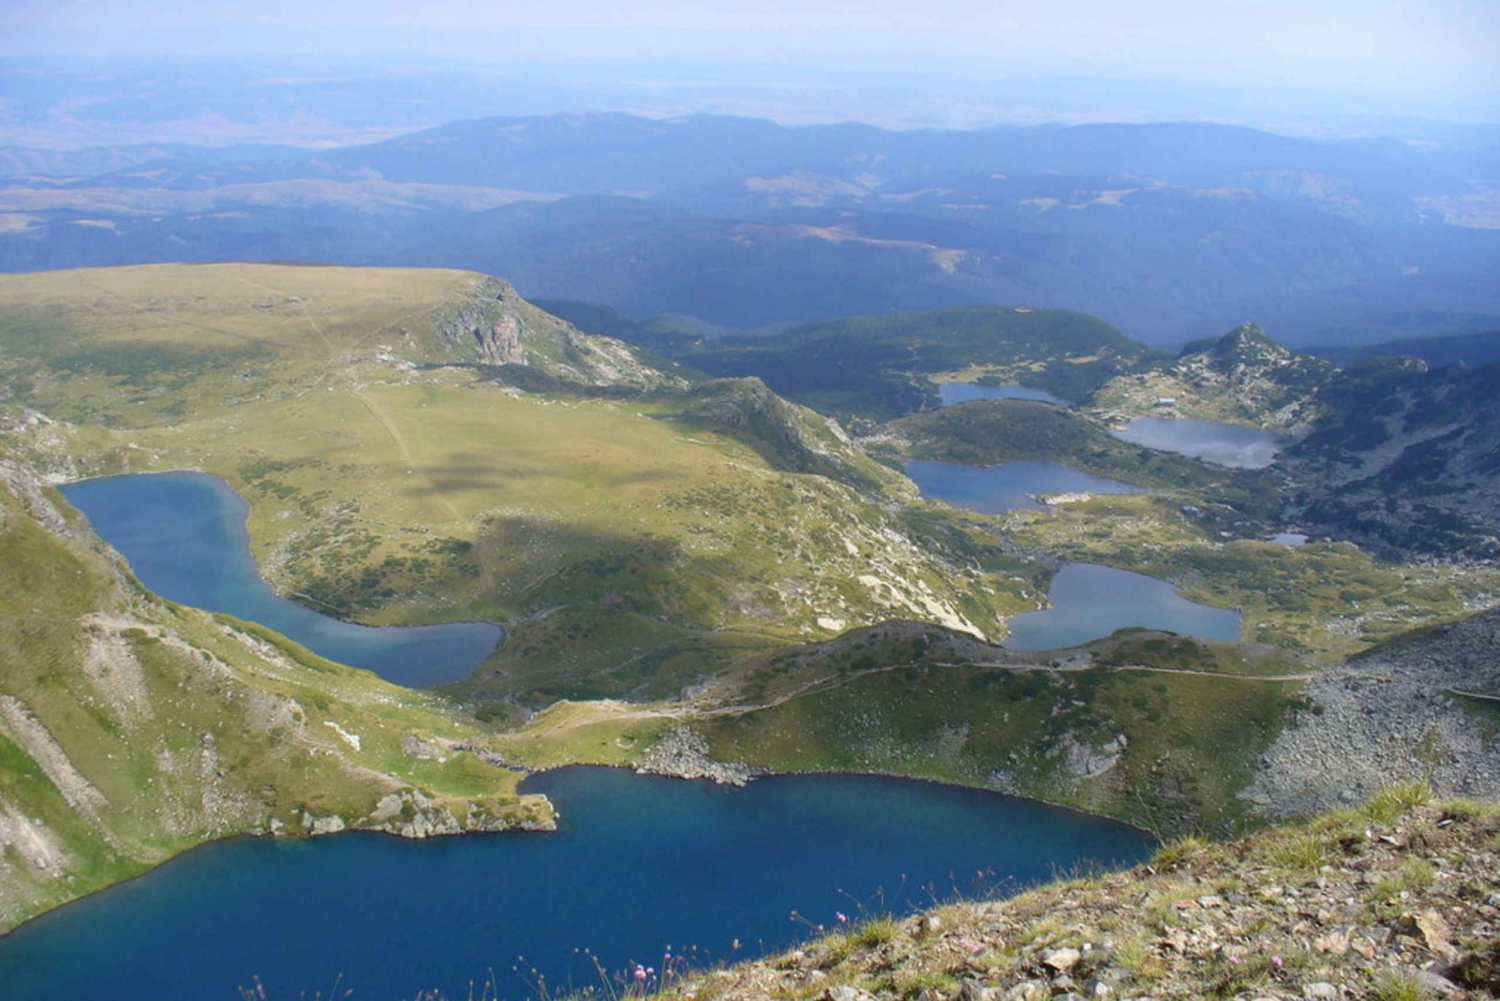 The 7 Rila Lakes: Full-Day Guided Hike from Plovdiv